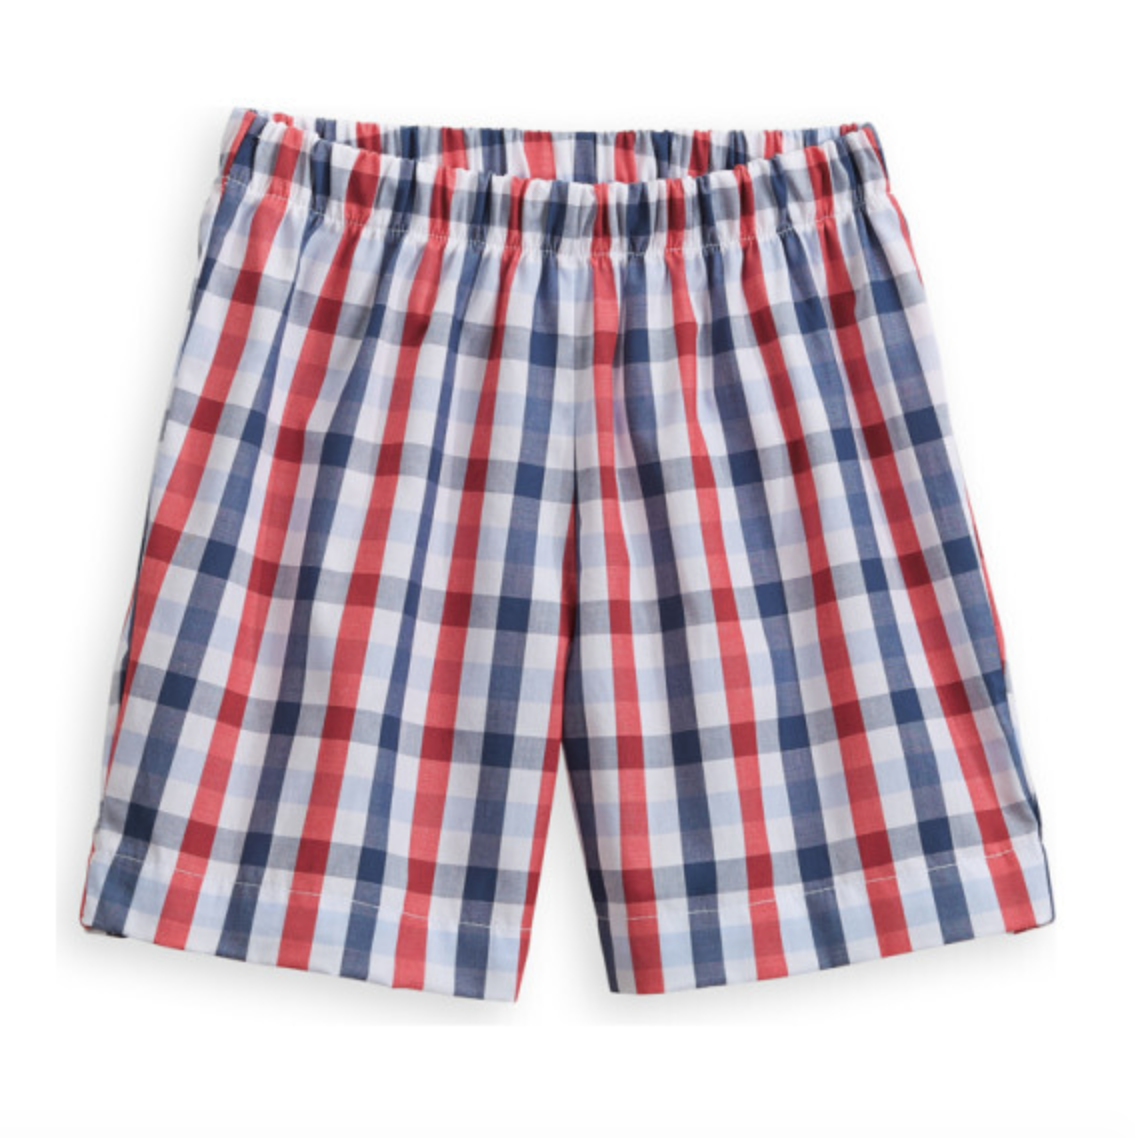 checked red and blue shorts